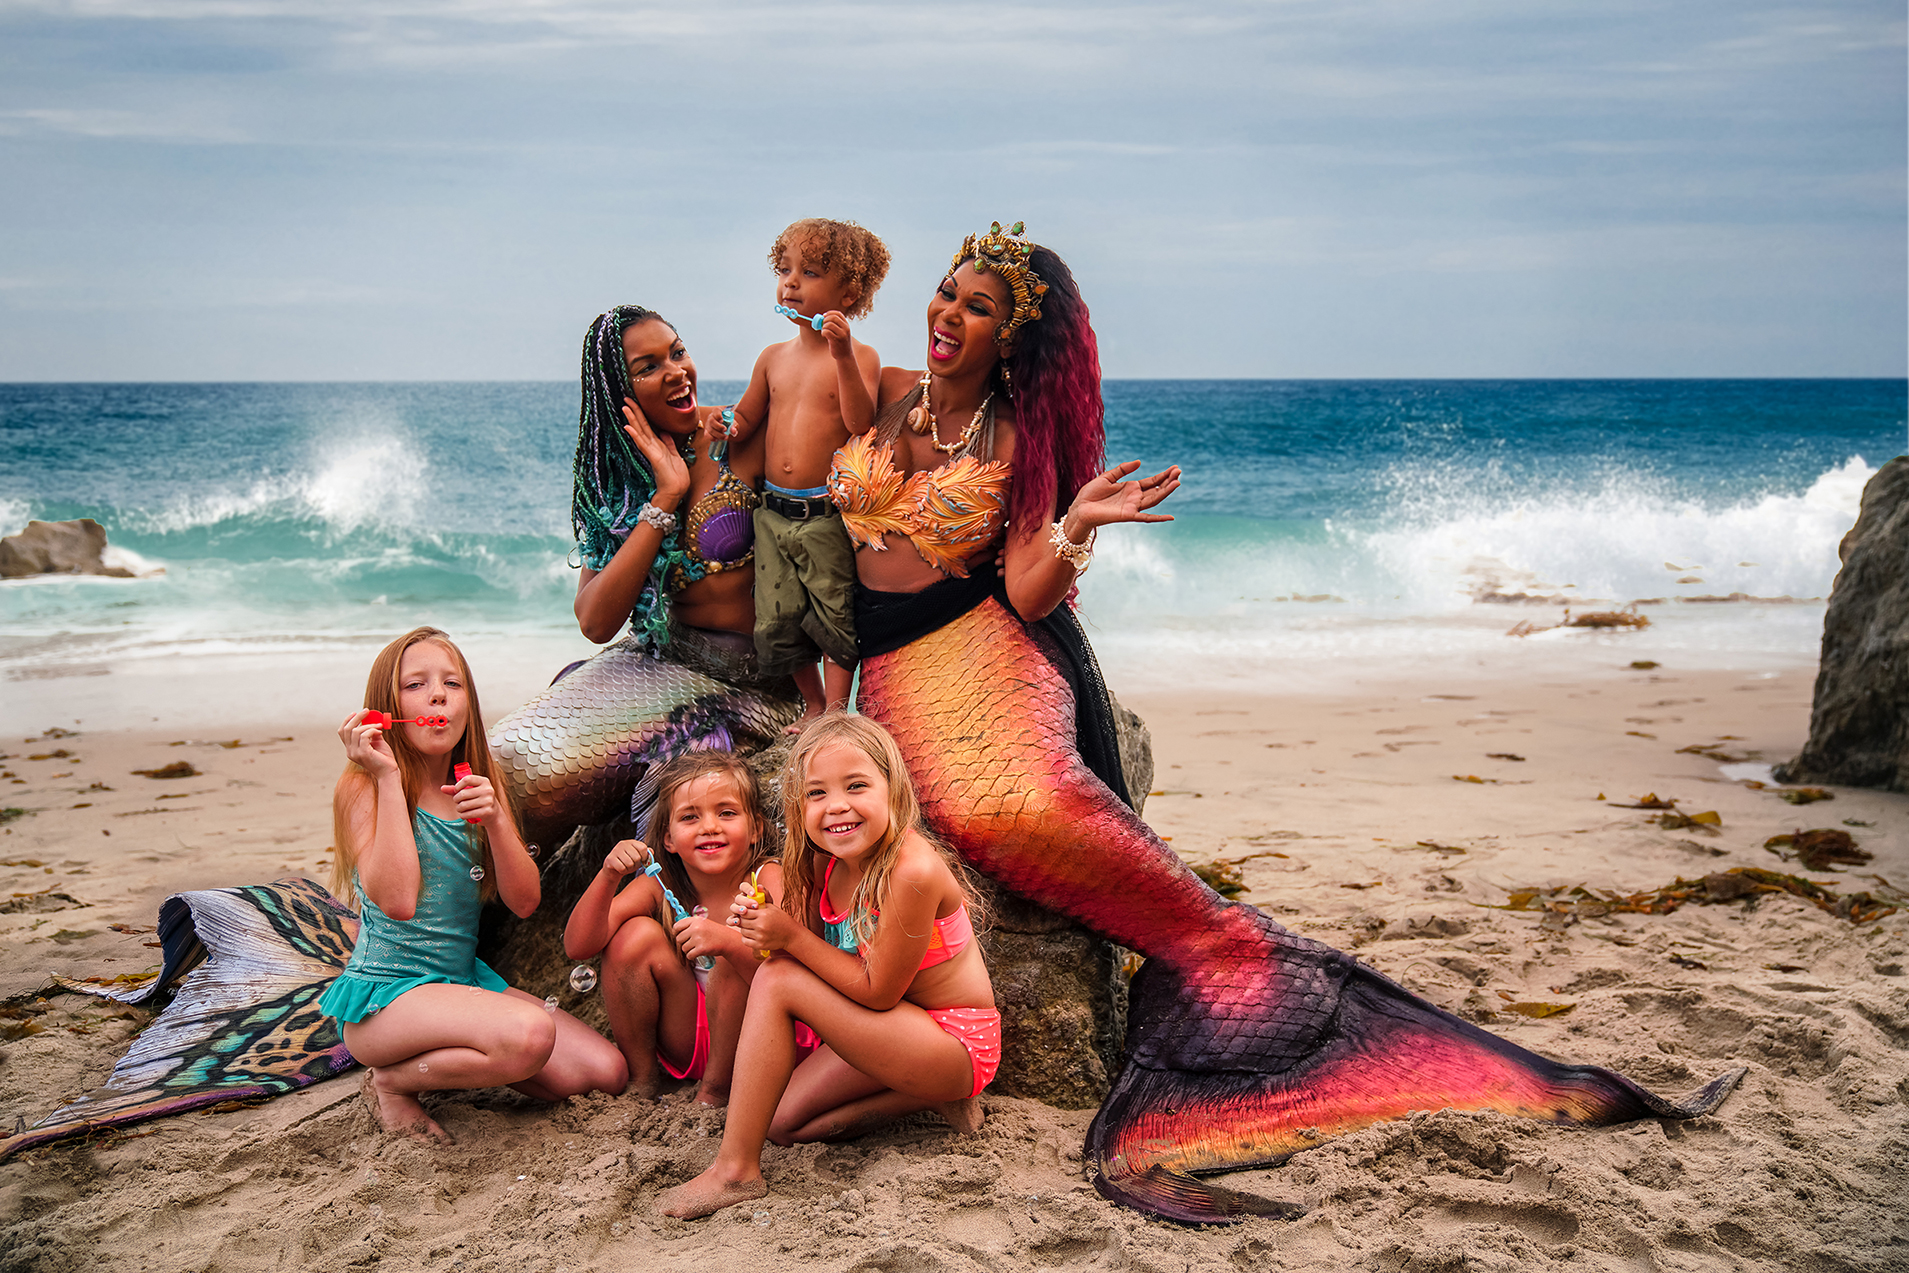 Mermaid Quintessence (left) with  Mermaid Pearl  (right) for a special beach meet and greet (c) John Paulsen